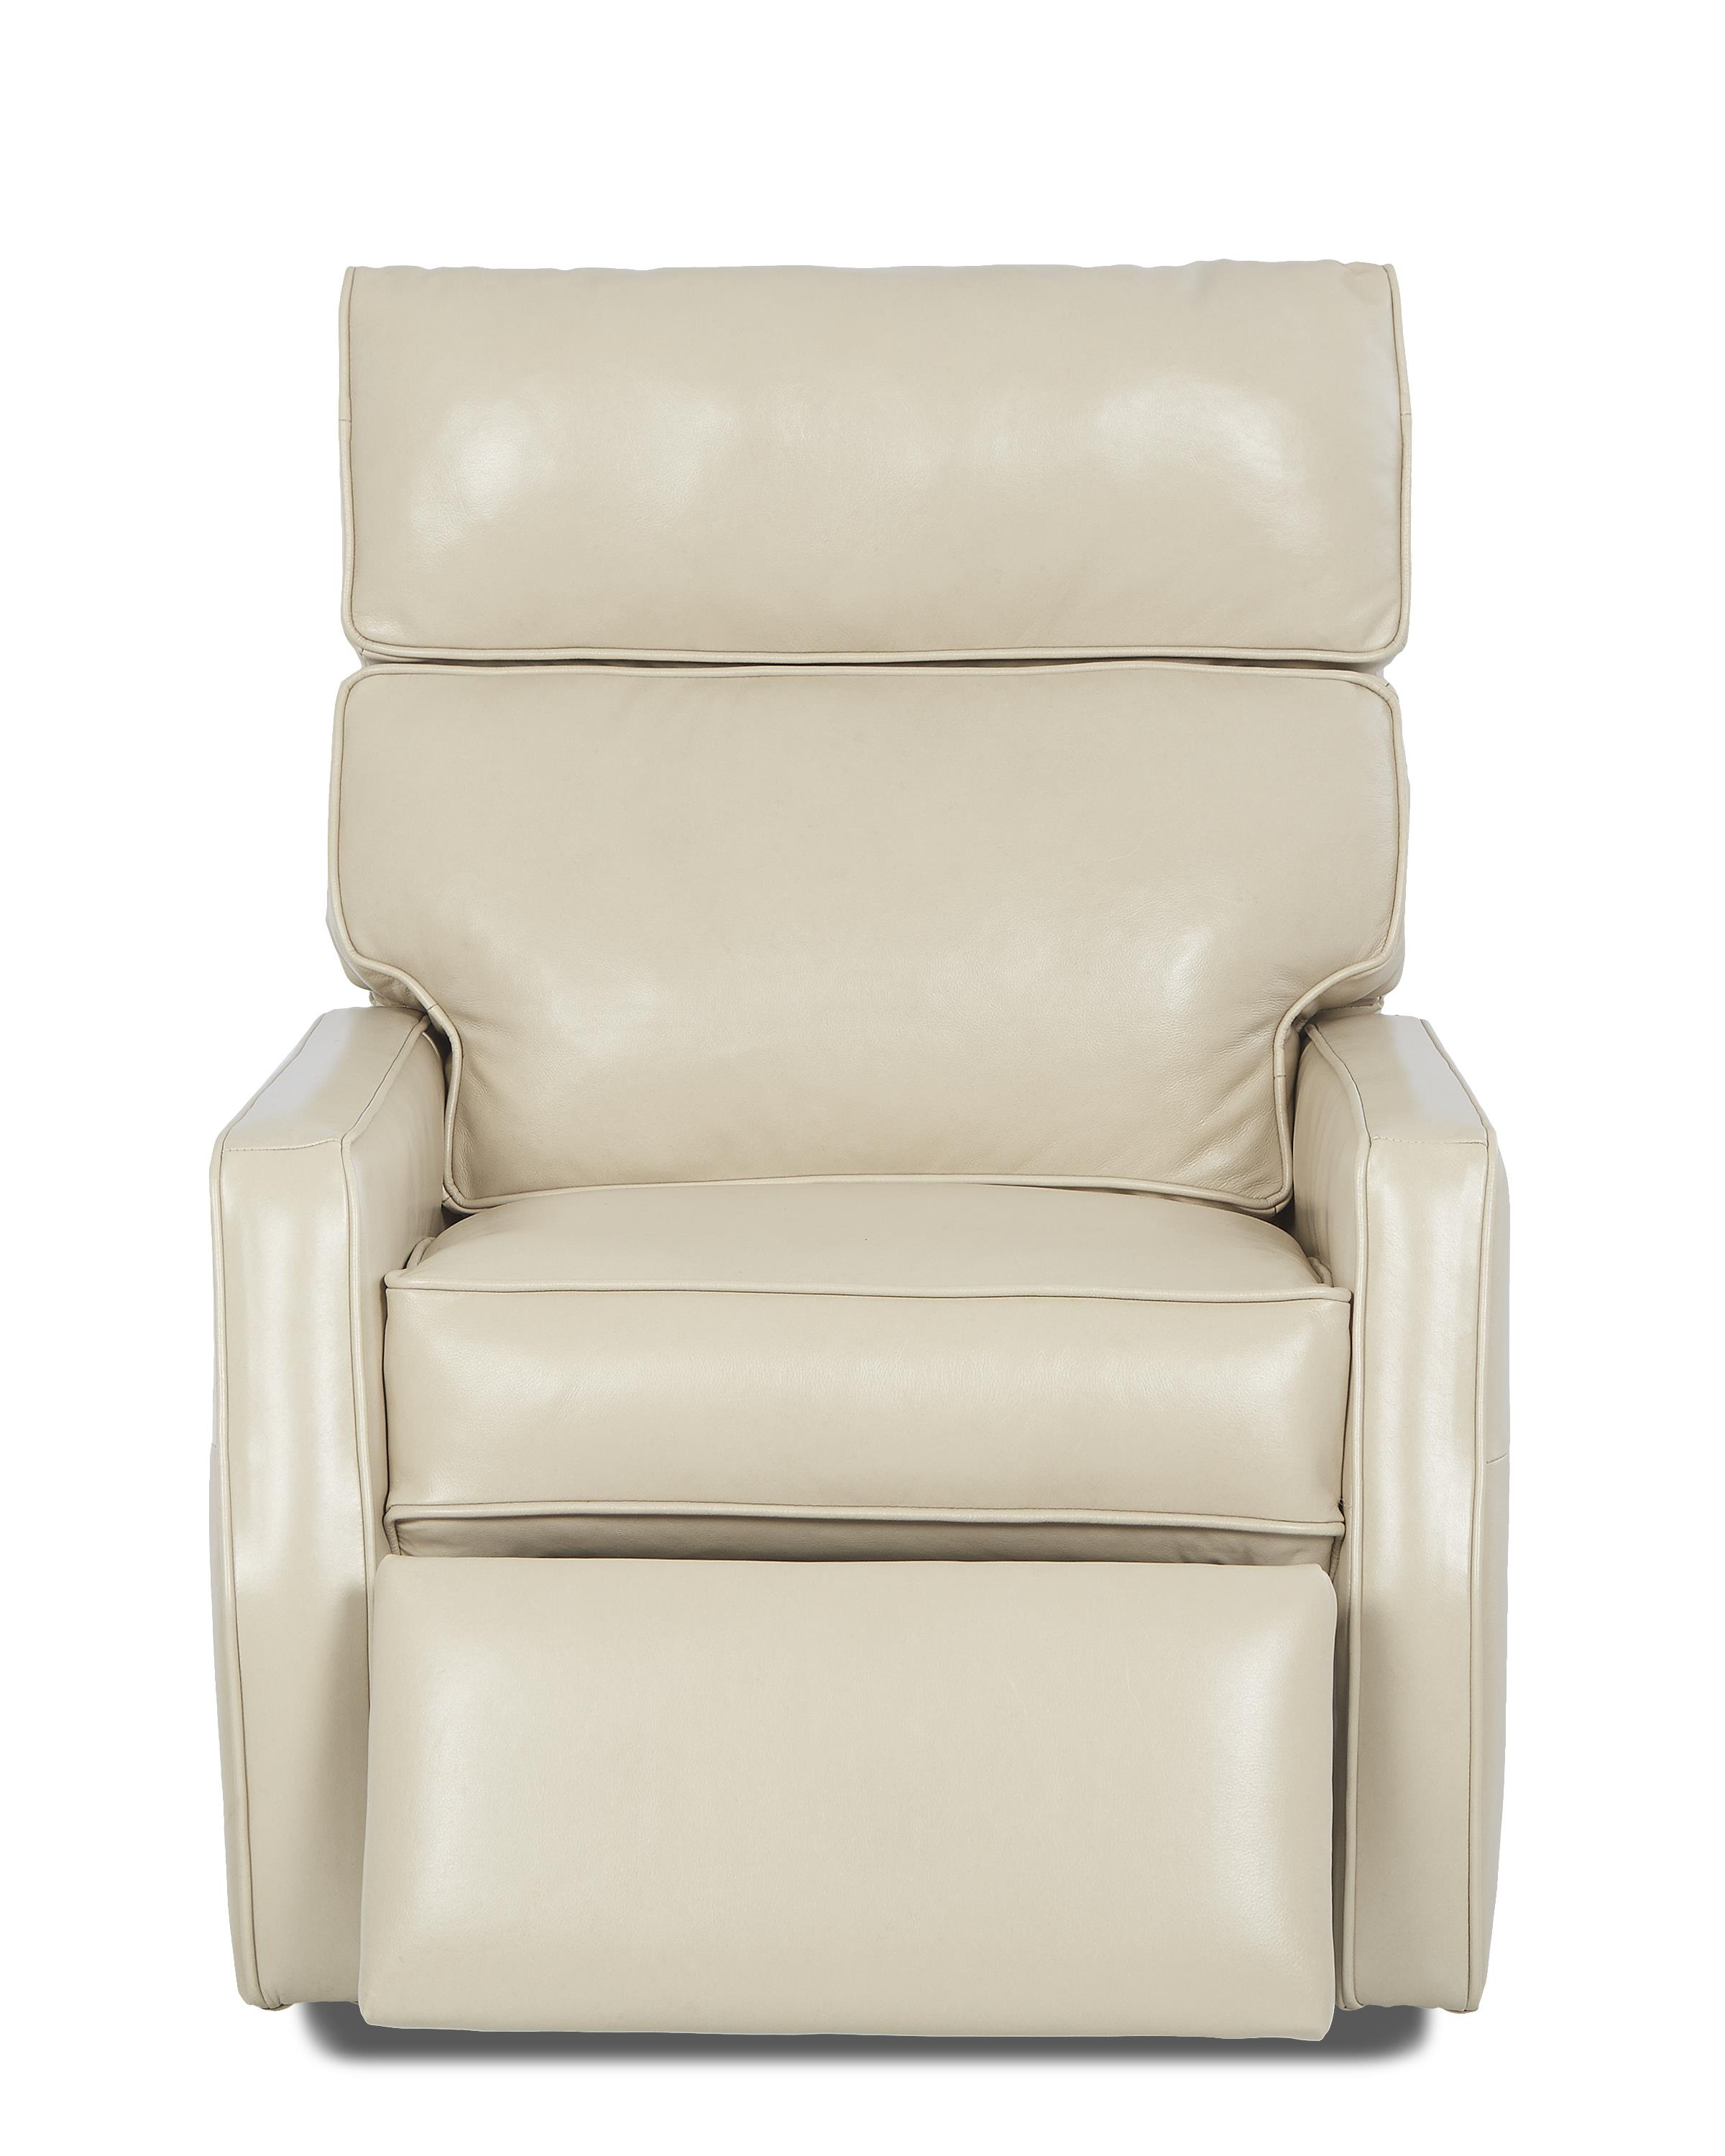 Fairlane Contemporary Swivel Rocking Reclining Chair By